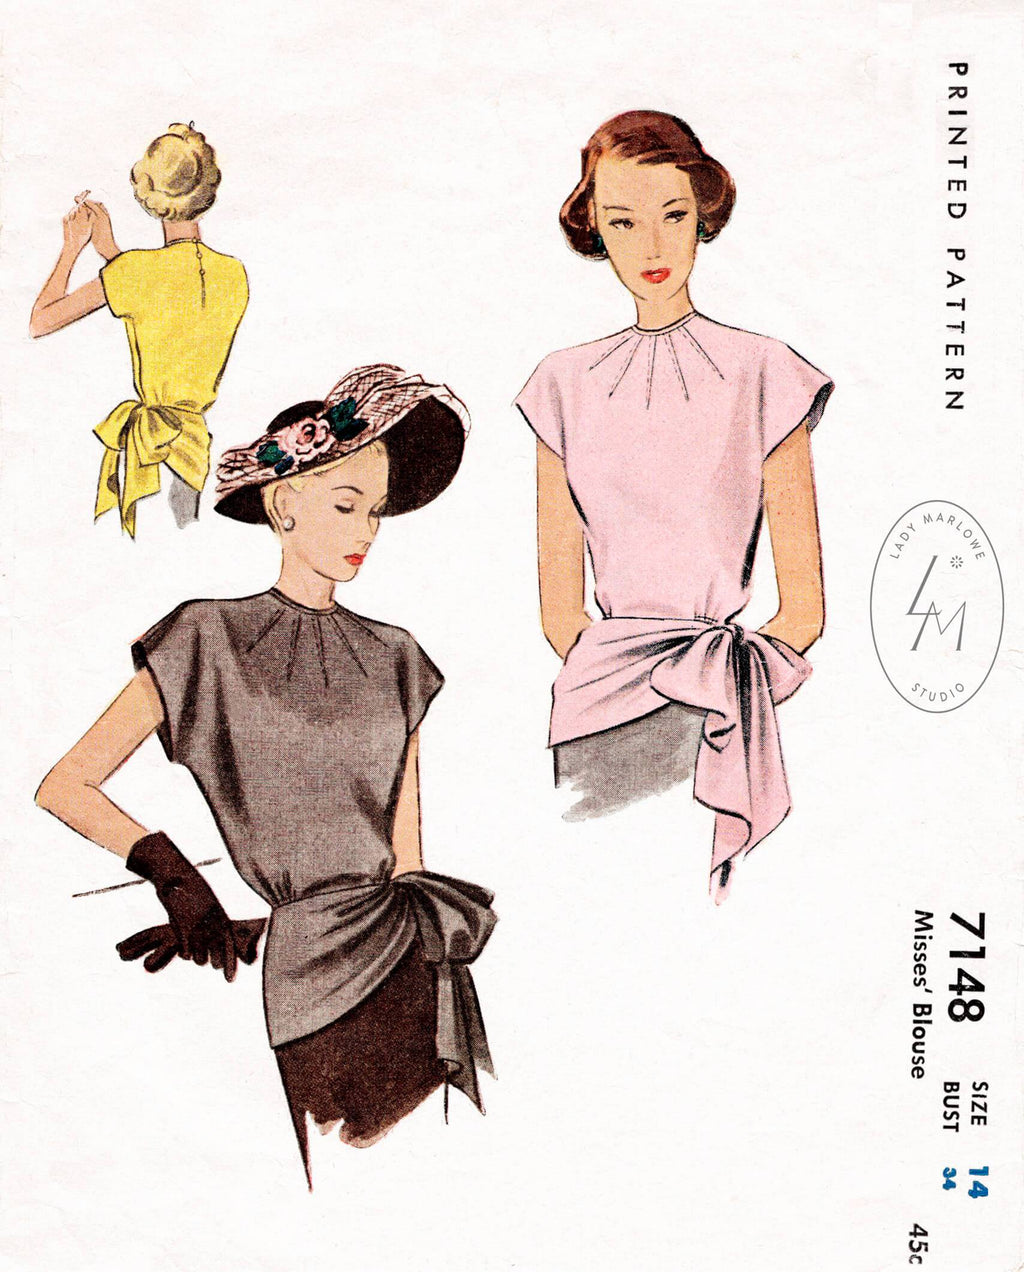 McCall 7148 1940s blouse vintage sewing pattern